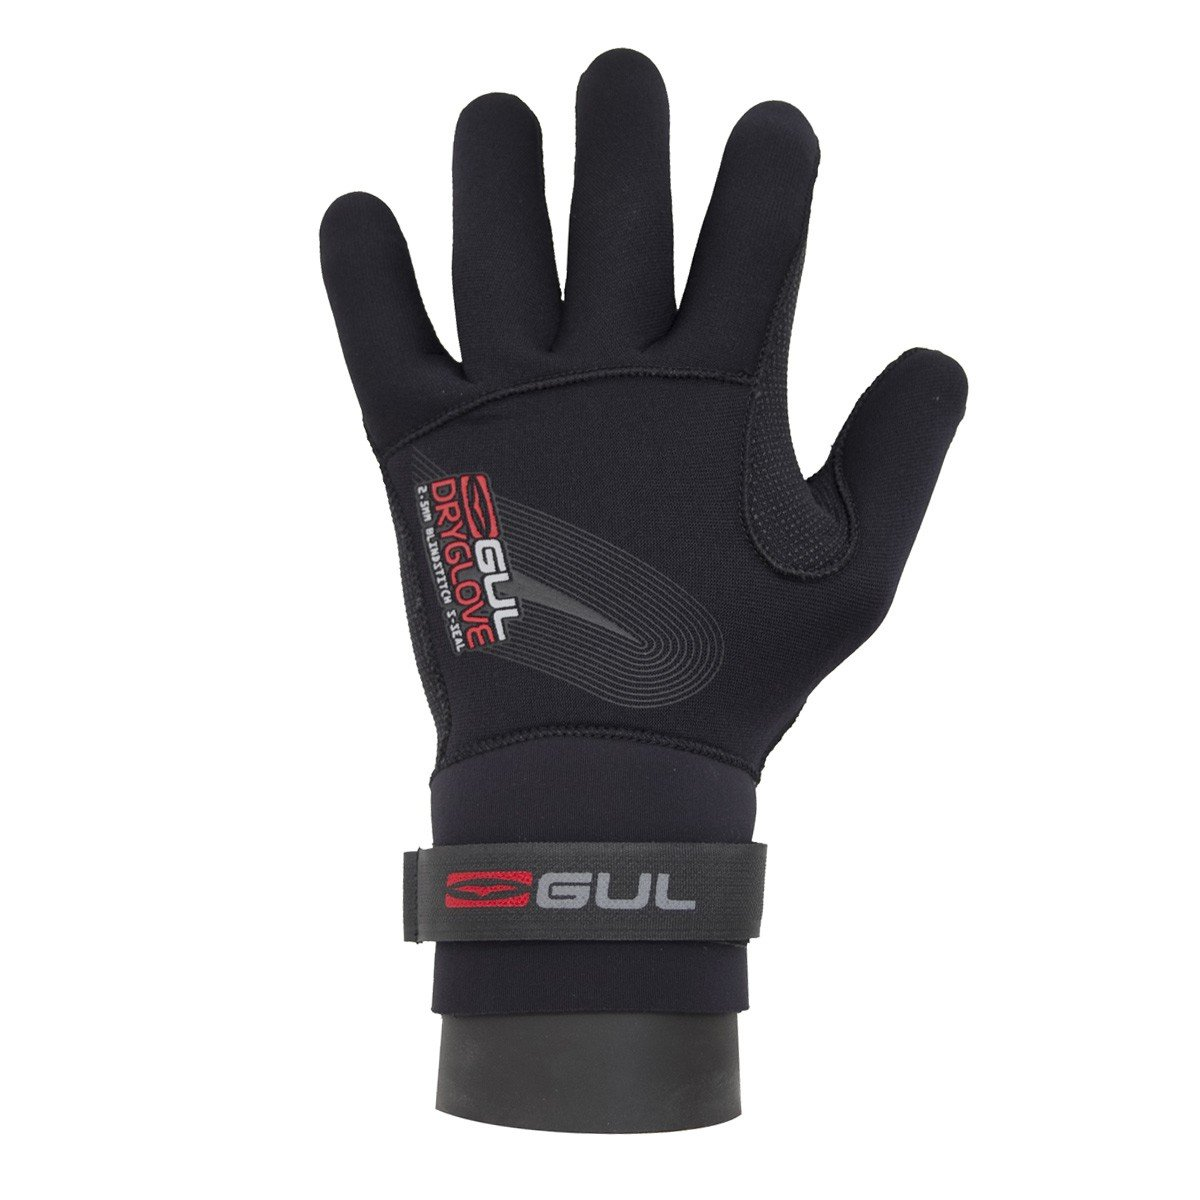 Gul Neoprene Dry Glove 2.5mm         Gl1233-A6